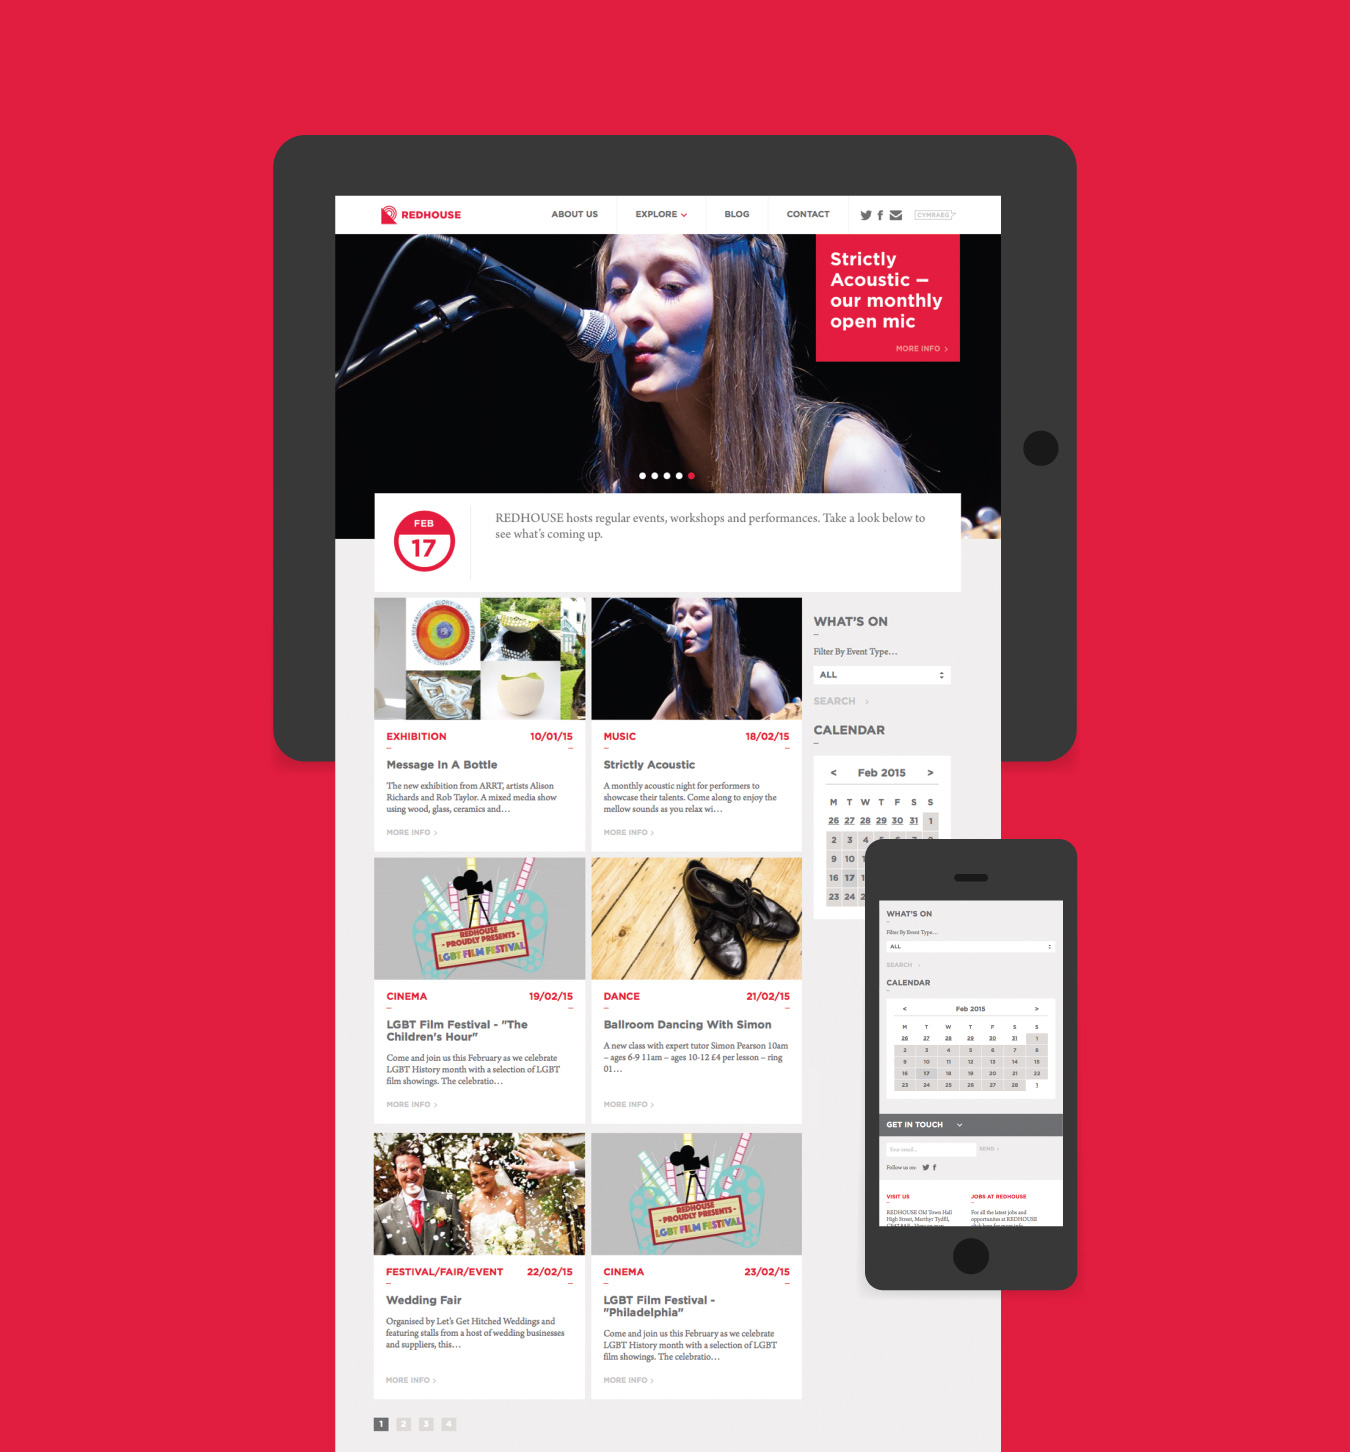 redhouse-website-hdd-3